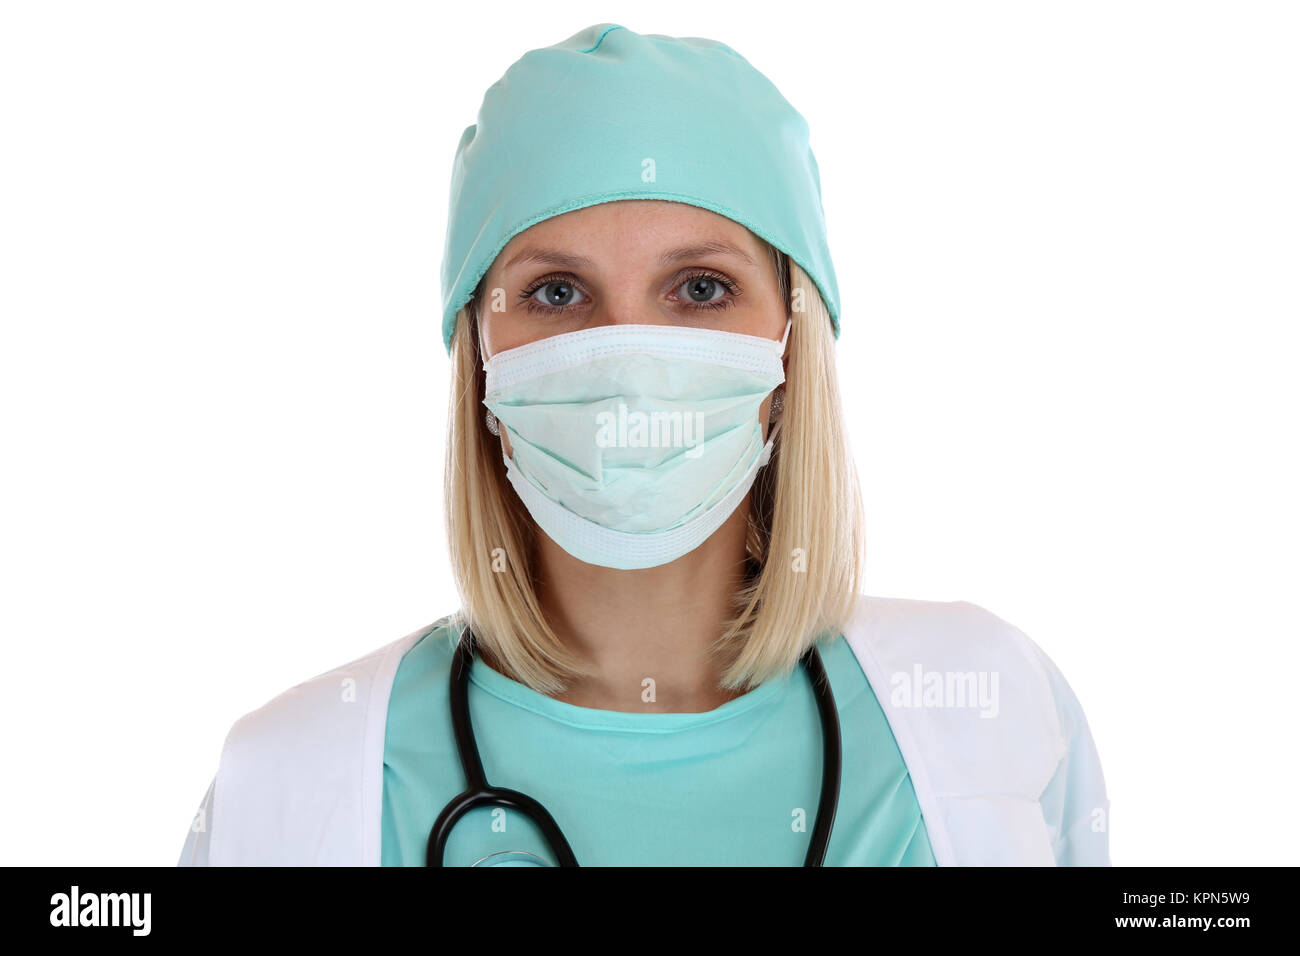 doctor nurse physician doctor portrait with mouth guard professional woman cut - Stock Image